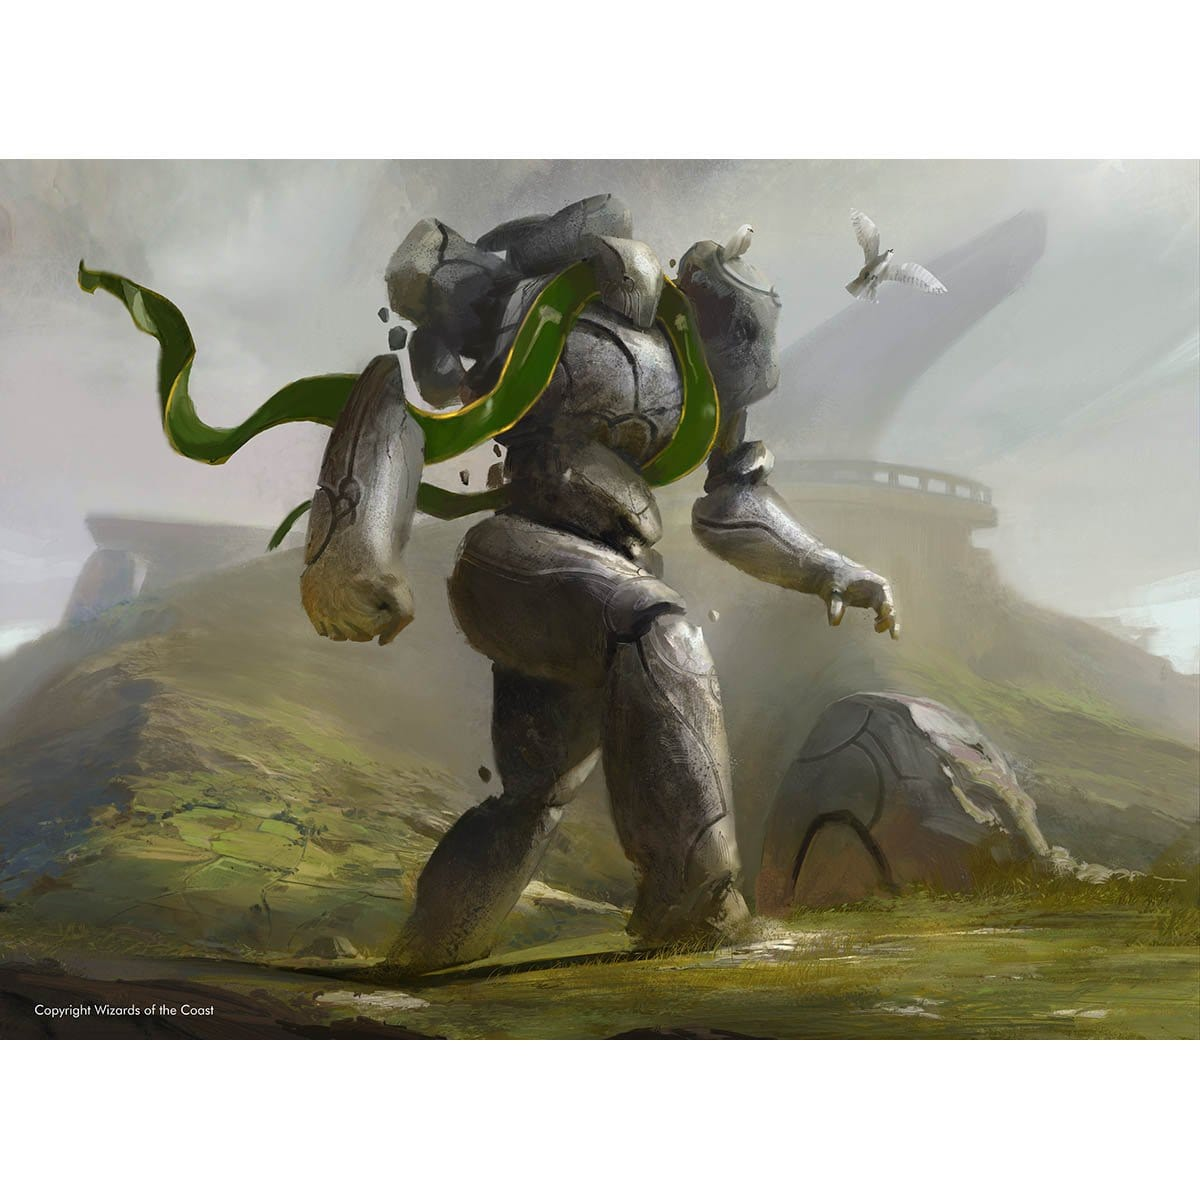 Henge Walker Print - Print - Original Magic Art - Accessories for Magic the Gathering and other card games